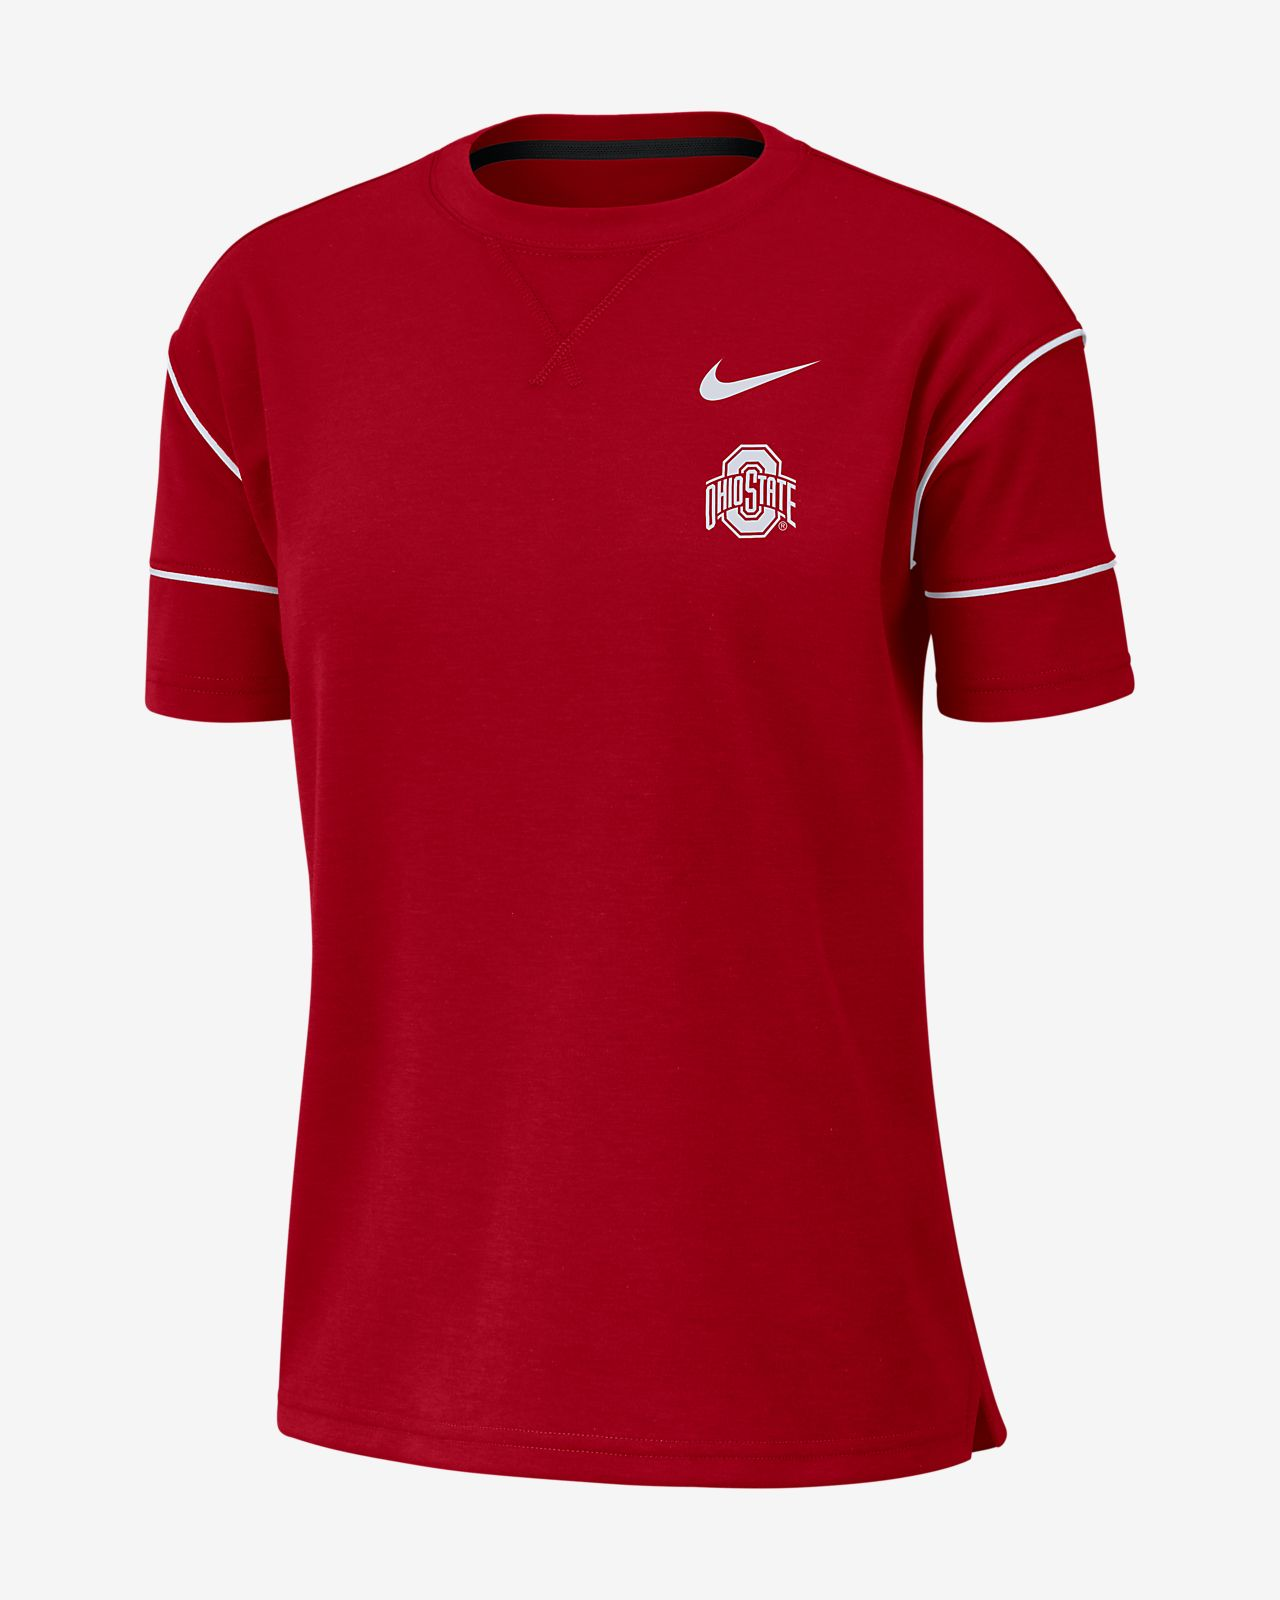 Nike College Breathe (Ohio State) Women's Short-Sleeve Top